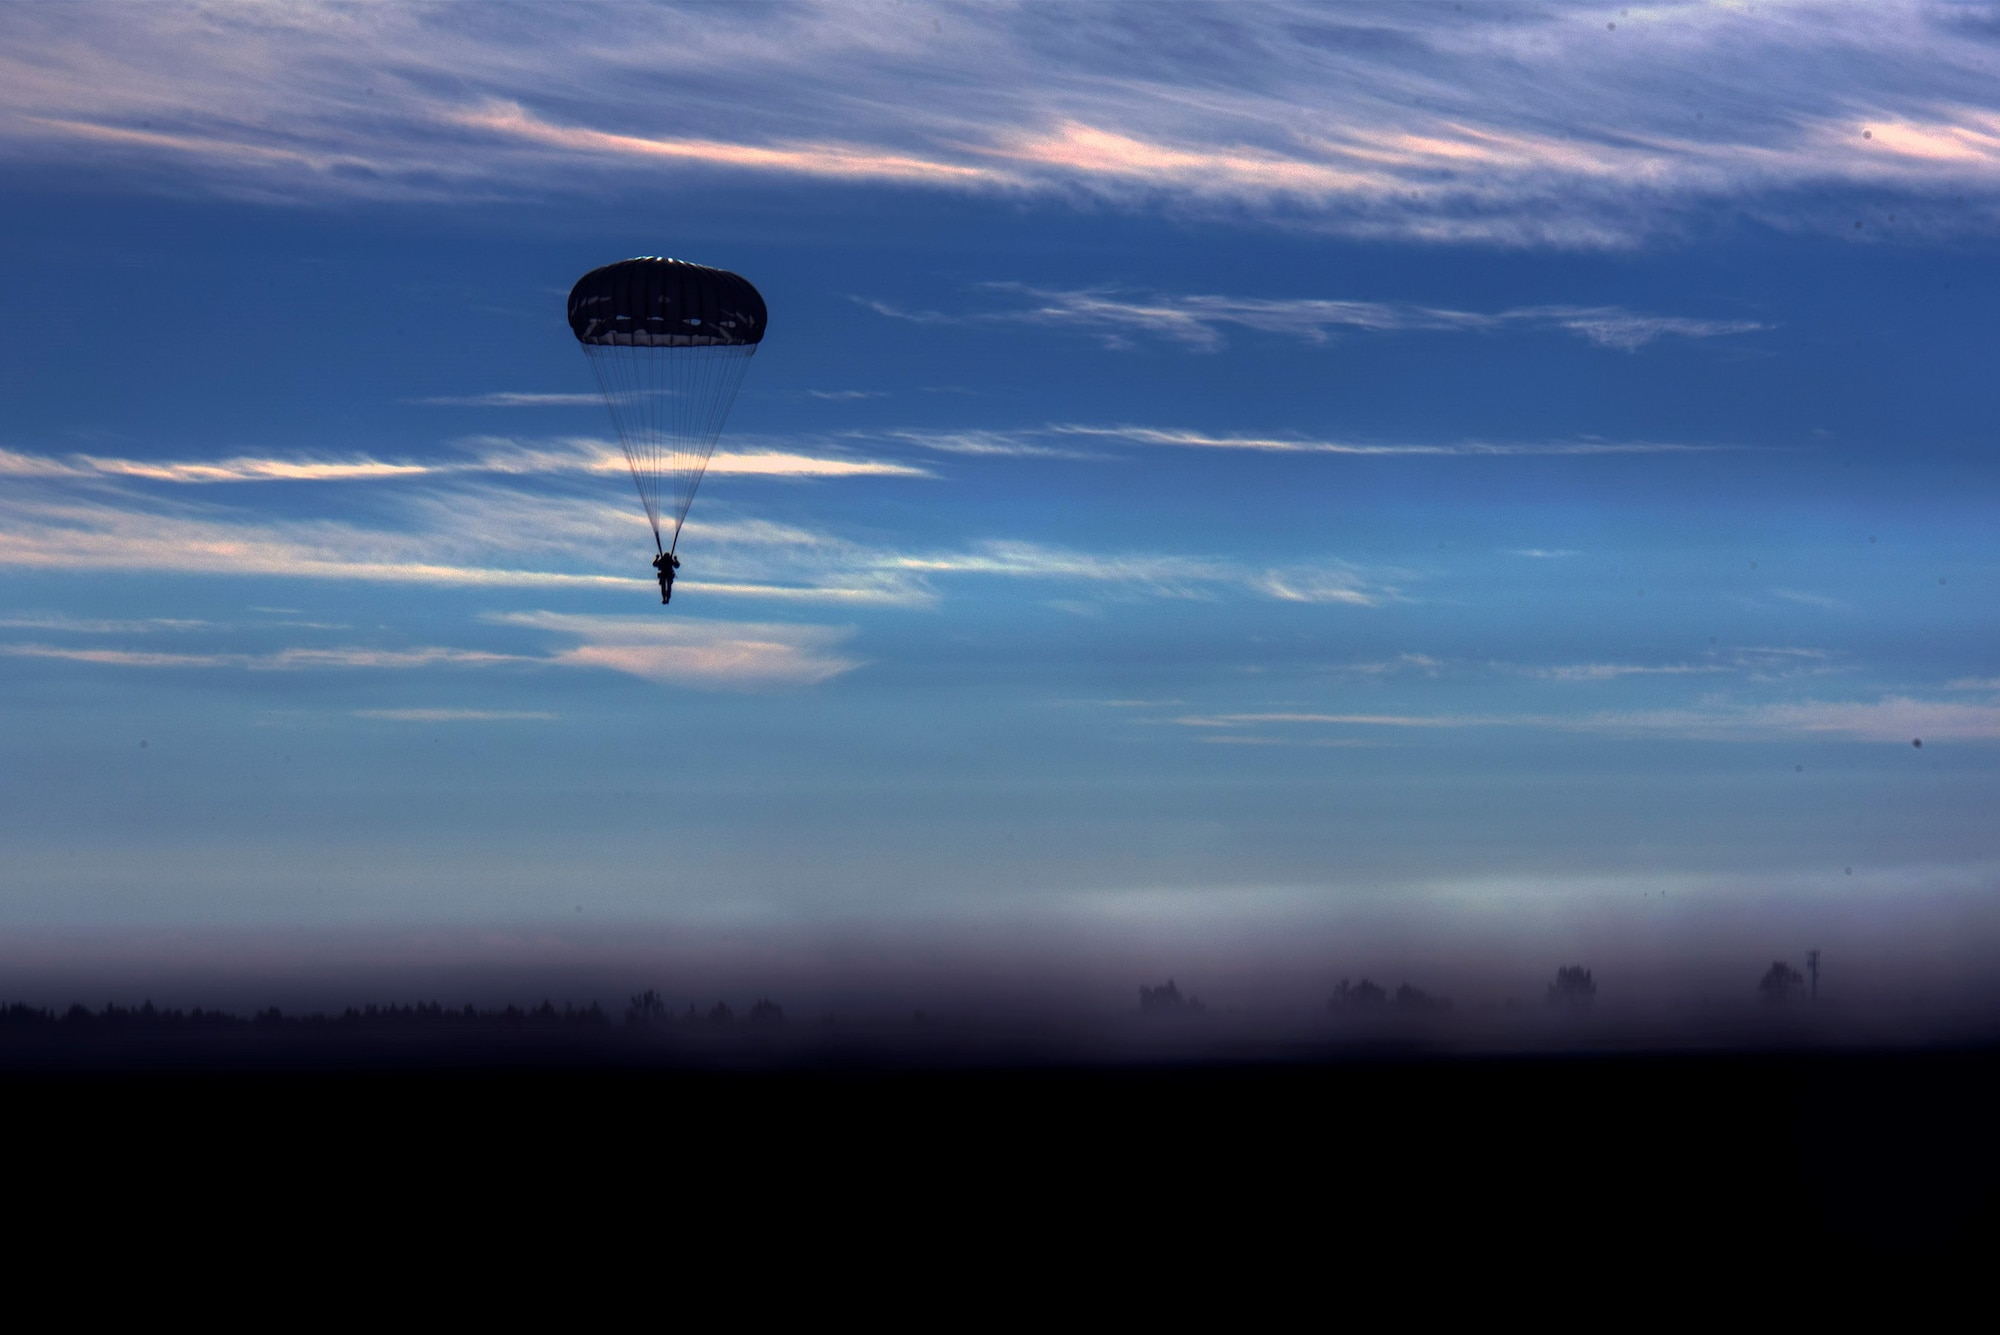 A U.S. Army airborne specialist parachutes in the sky after a sustained jump during the 19th Annual Randy Oler Memorial Operation Toy Drop, Dec. 14, 2016, at Luzon Drop Zone, Camp Mackall, N.C. The OTP tradition was established in 1998 by the late U.S. Army Reserve Staff Sgt. Randy Oler, Civil Affairs and Psychological Operations Command soldier with 1,200 soldiers participating and has grown into a multinational exercise with 4,000 paratroopers. (U.S. Air Force photo by Airman 1st Class Greg Nash)